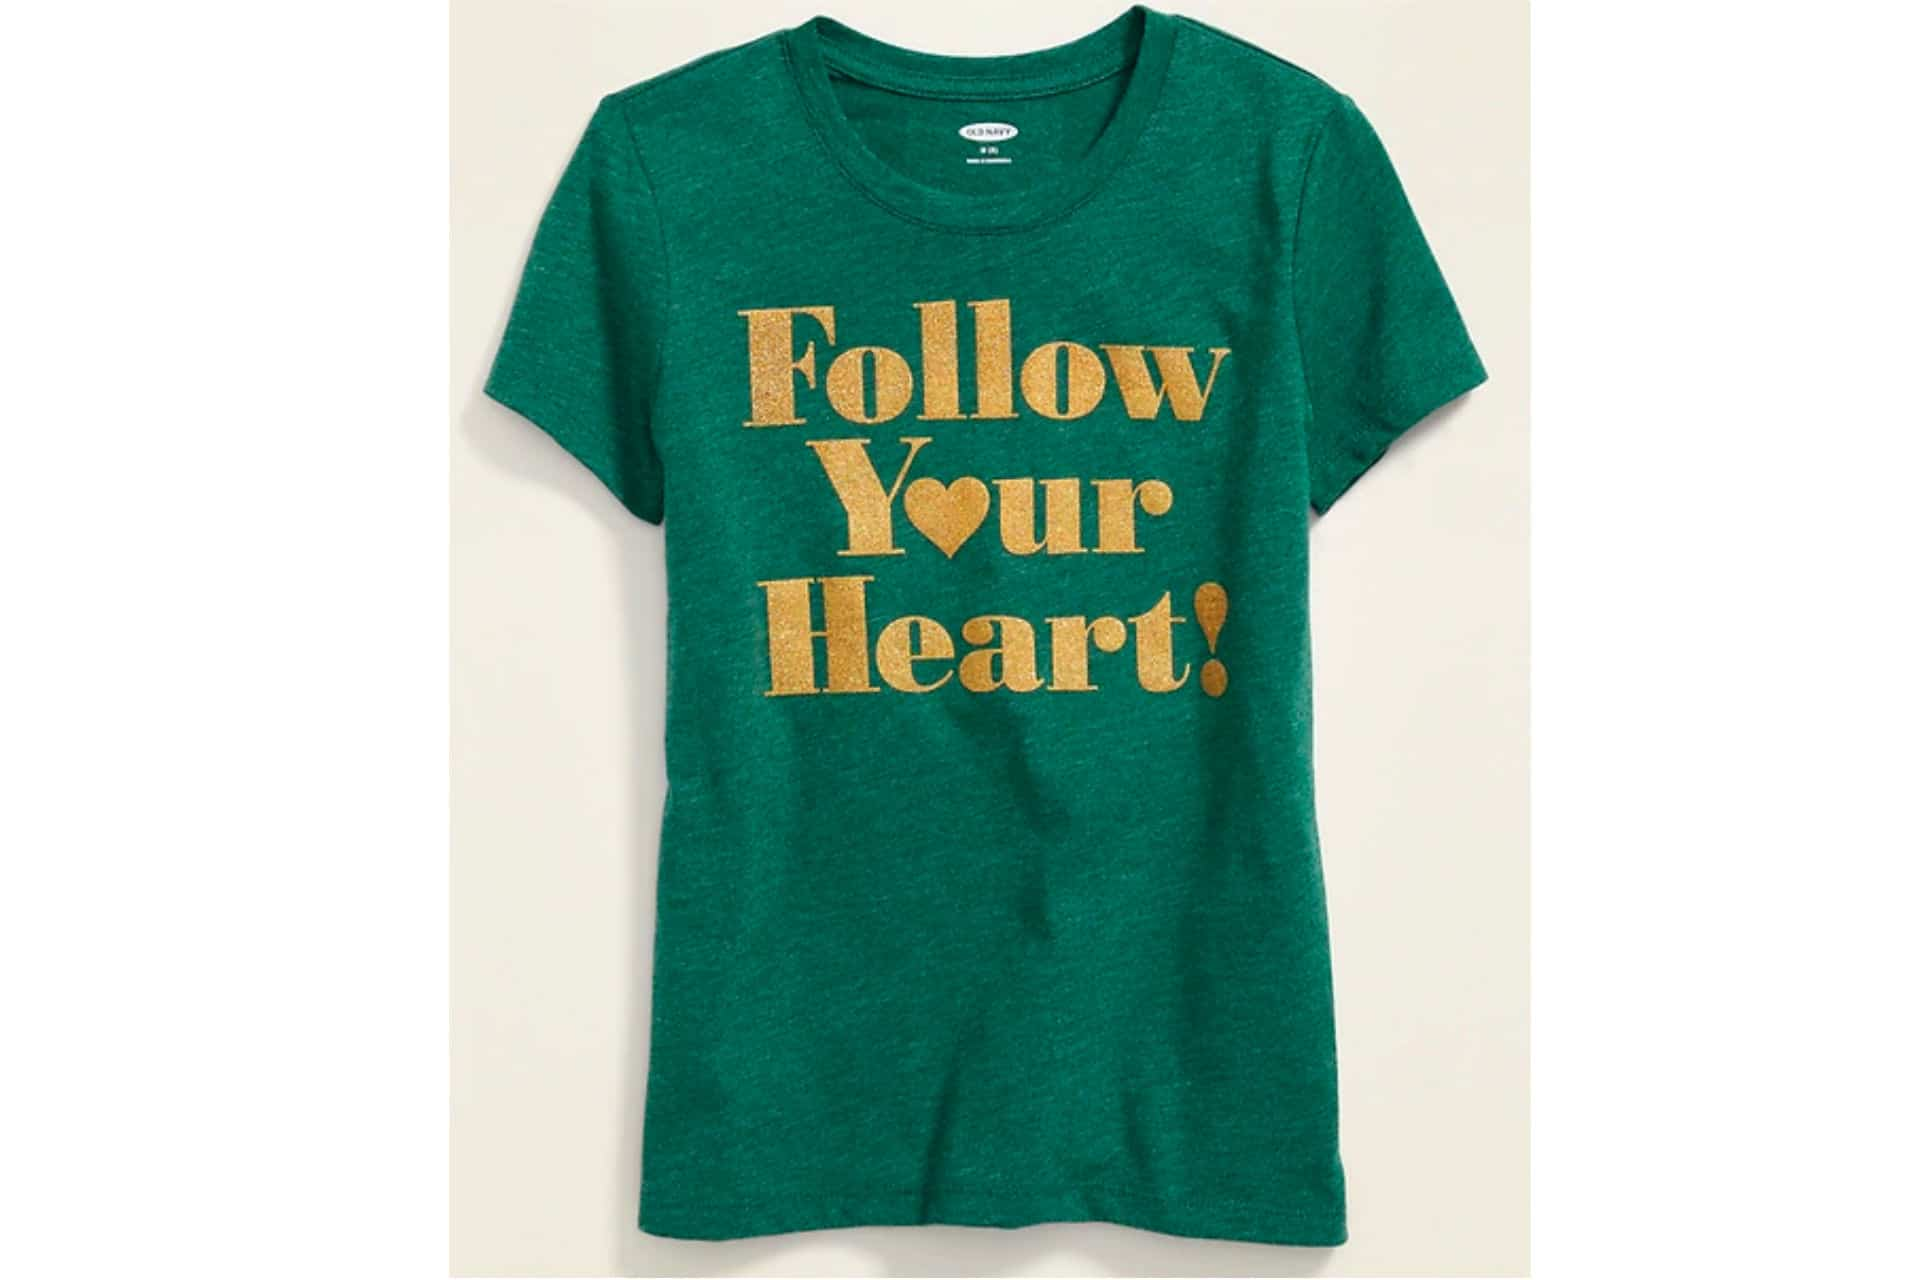 Green shirt that says 'Follow your heart'